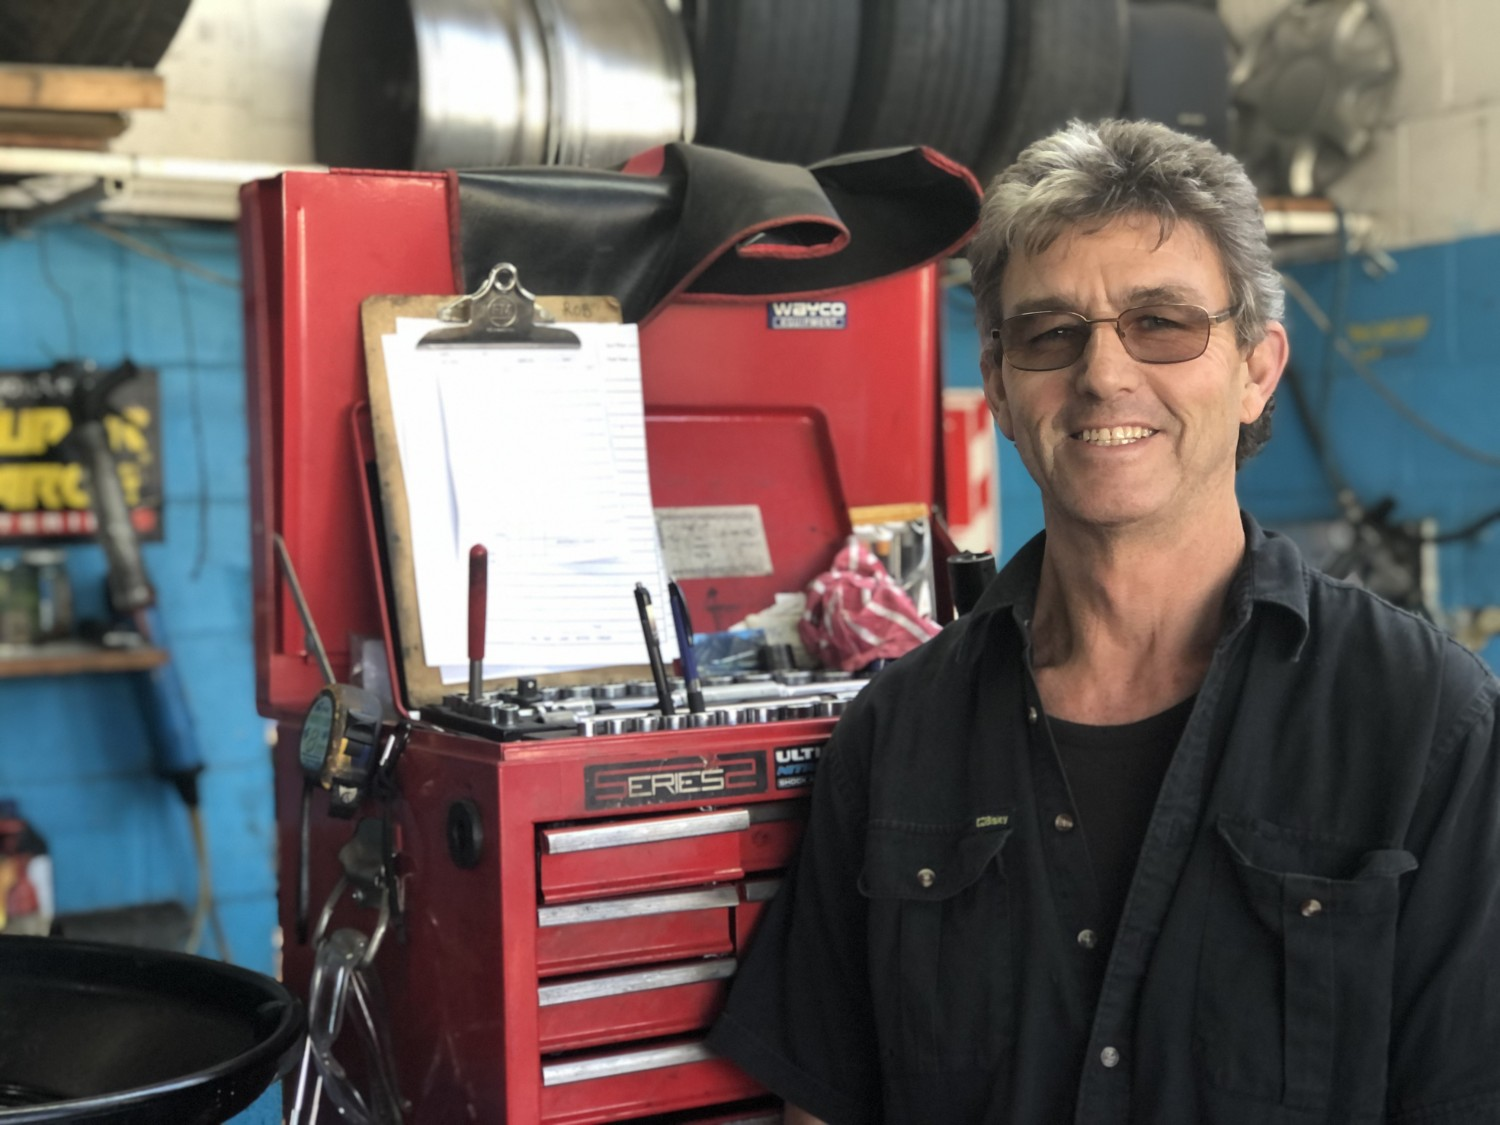 Mechanic standing in front of tool kit